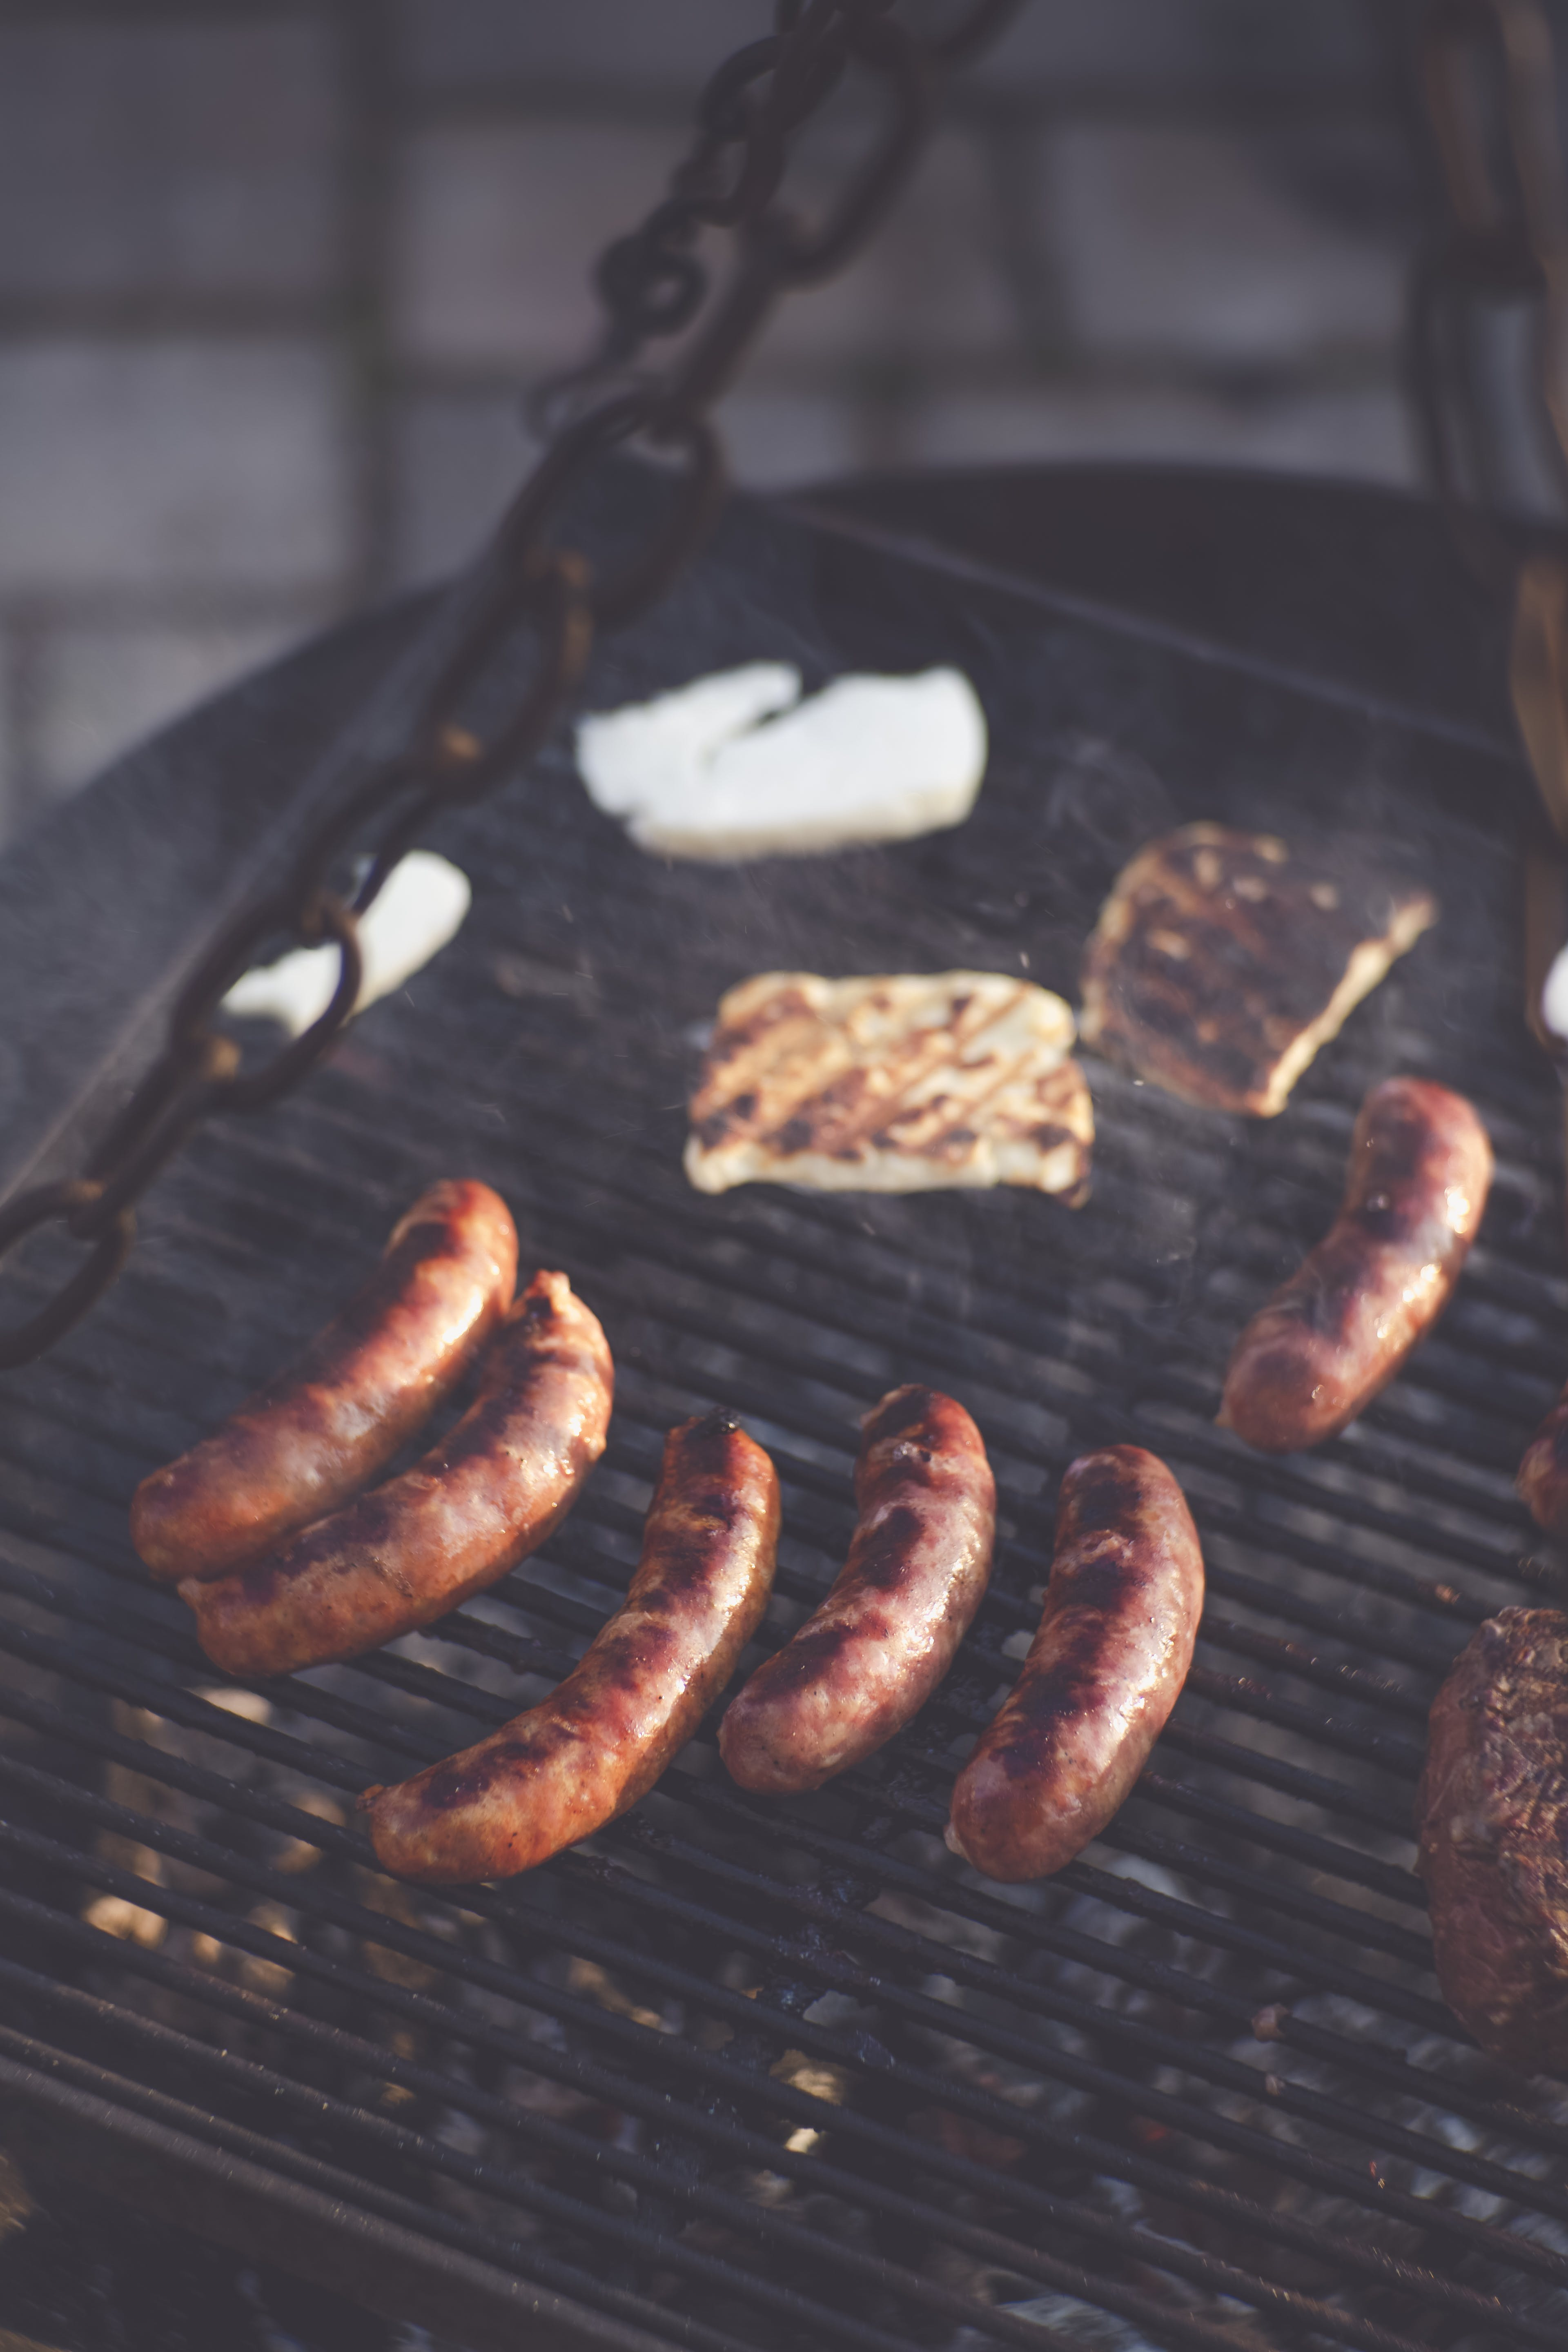 Gratis lagerfoto af BBQ-mad, bratwurst, Camping, charbroiled